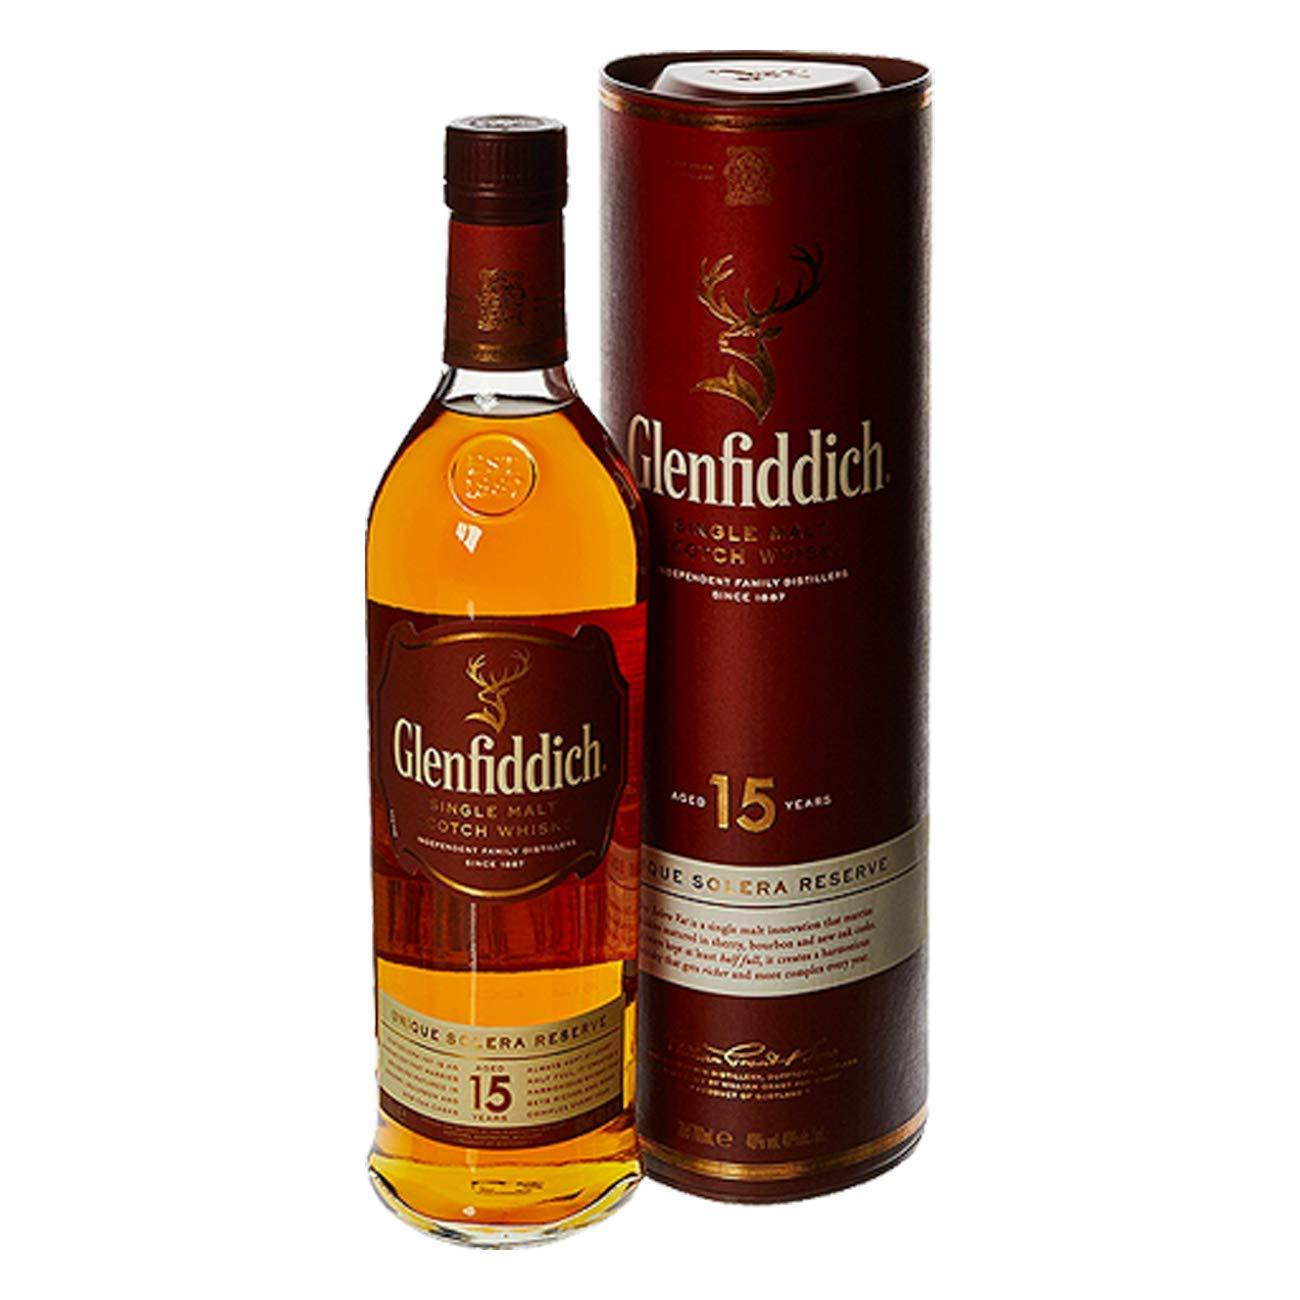 Glenfiddich 15 Year Old Scotch Whisky, 70 cl: Amazon.co.uk: Grocery